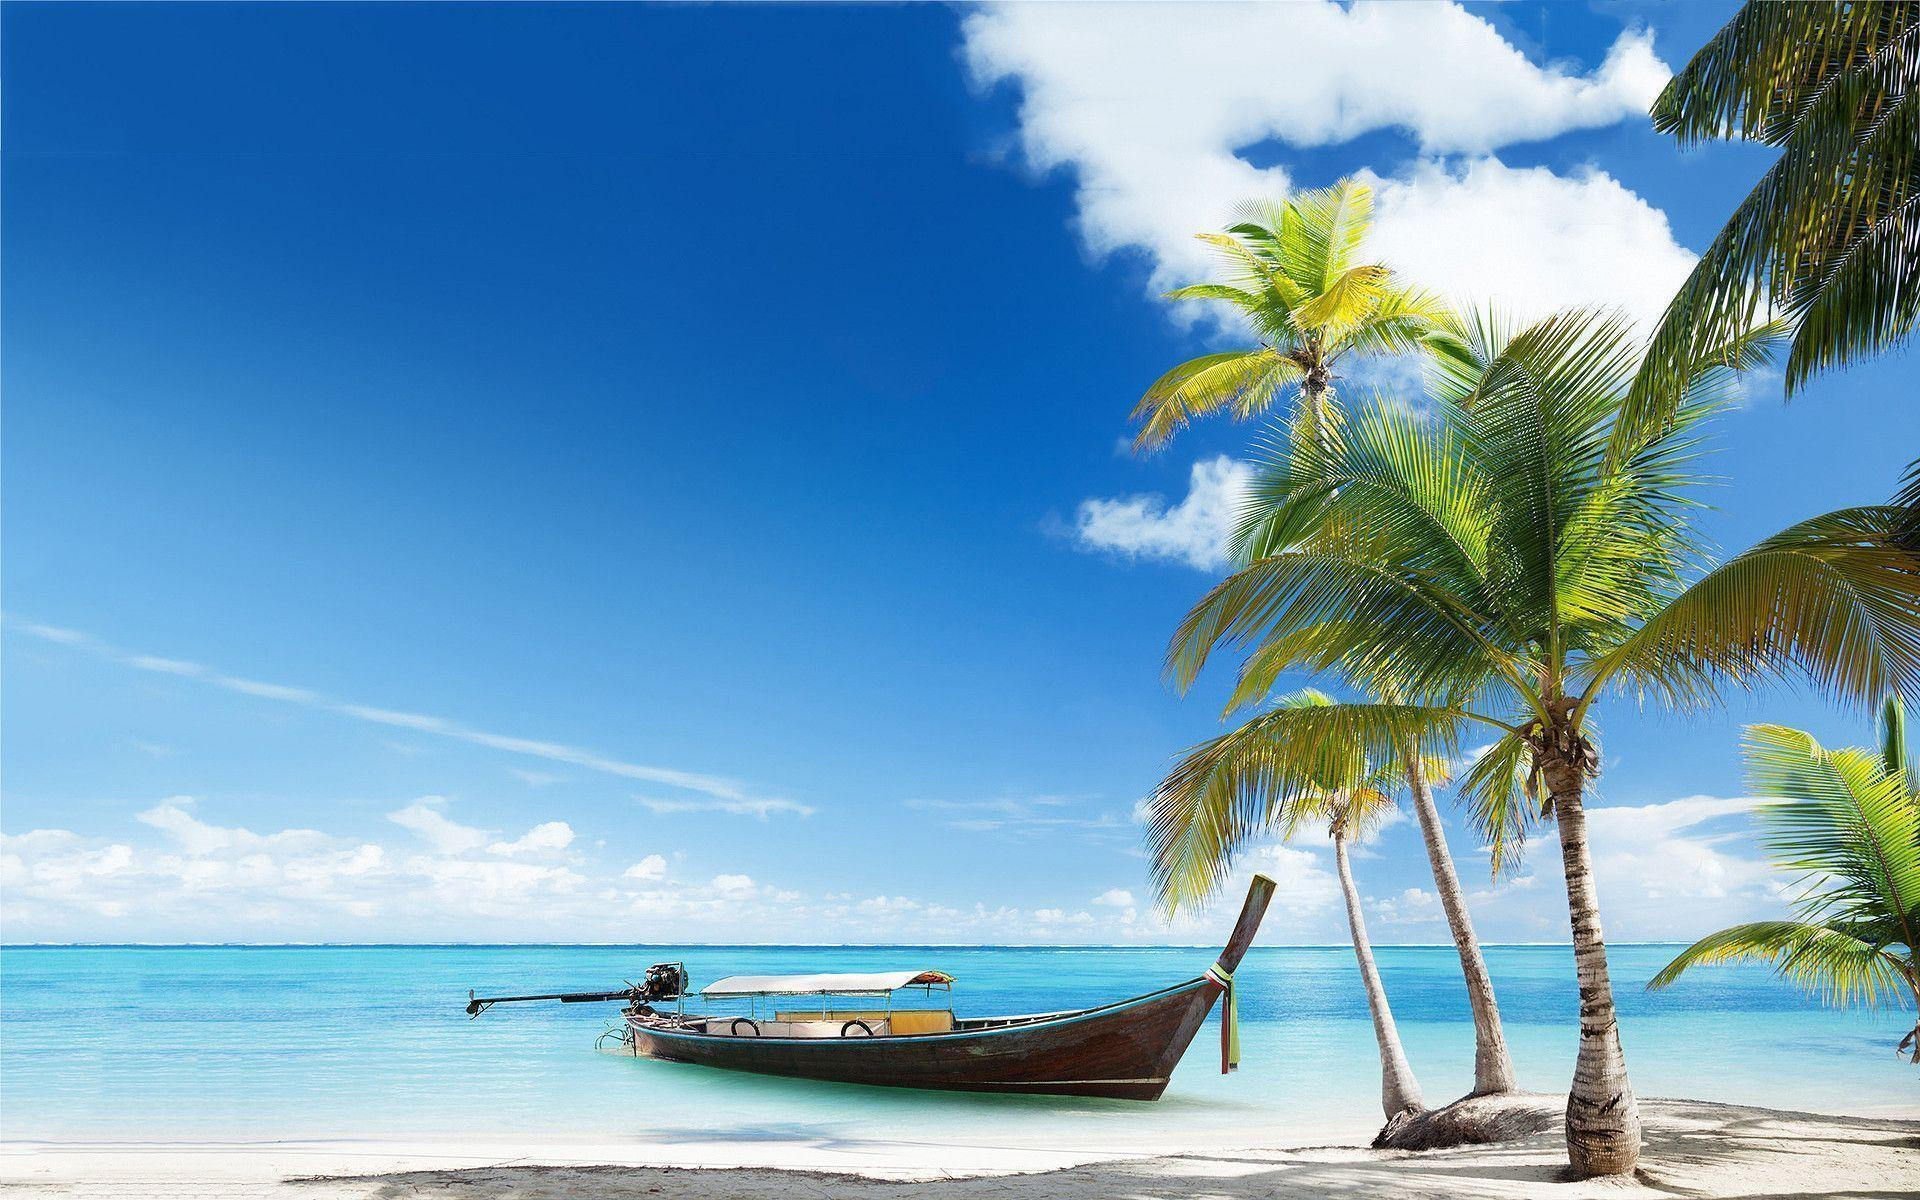 On the beach wallpapers wallpaper cave - Beach hd wallpapers 1080p ...